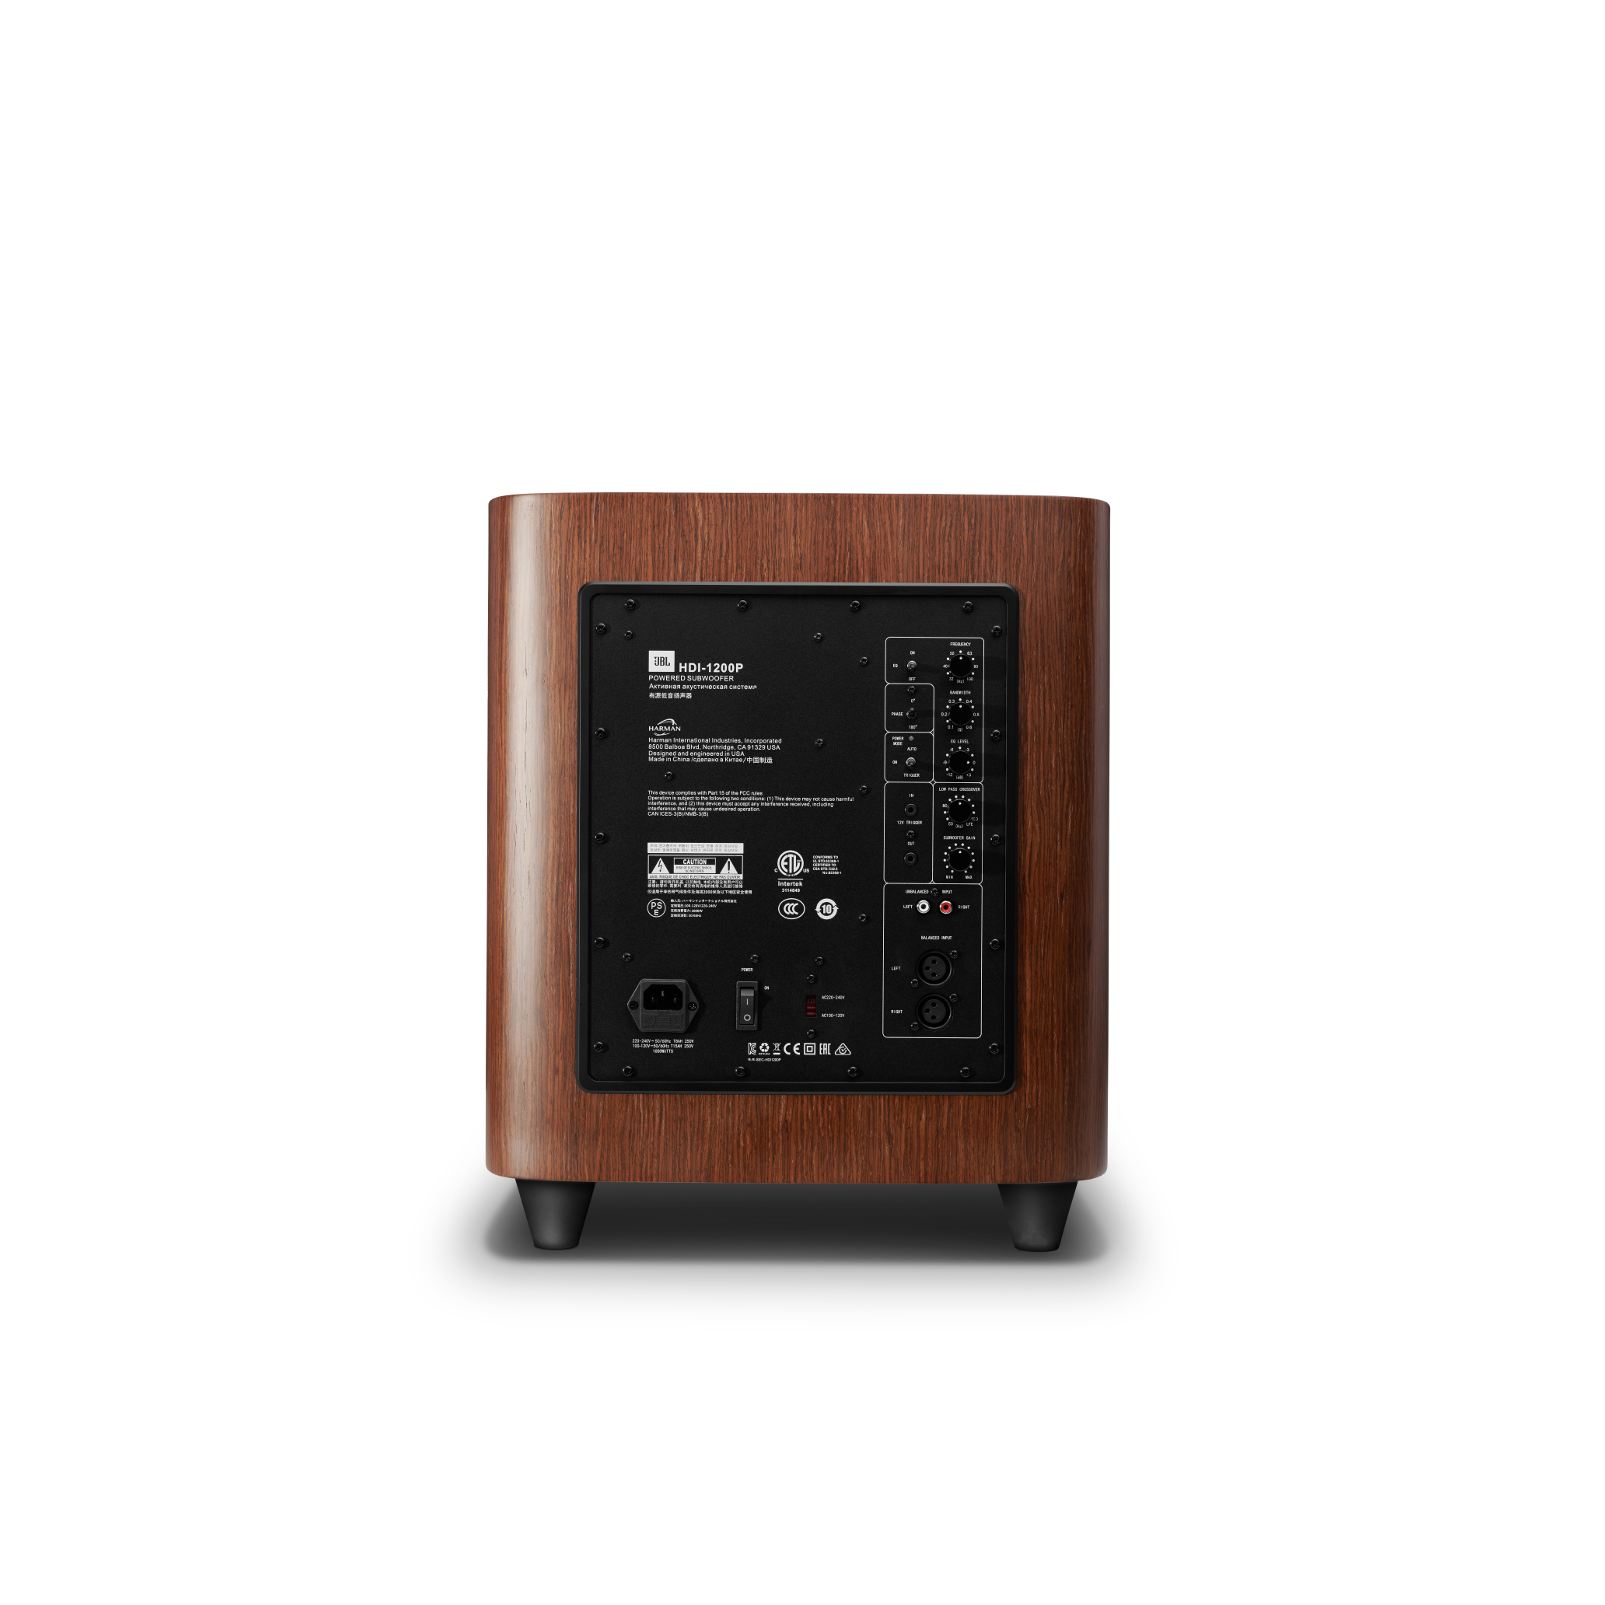 HDI-1200P - Walnut - 12-inch (300mm) 1000W Powered Subwoofer - Back